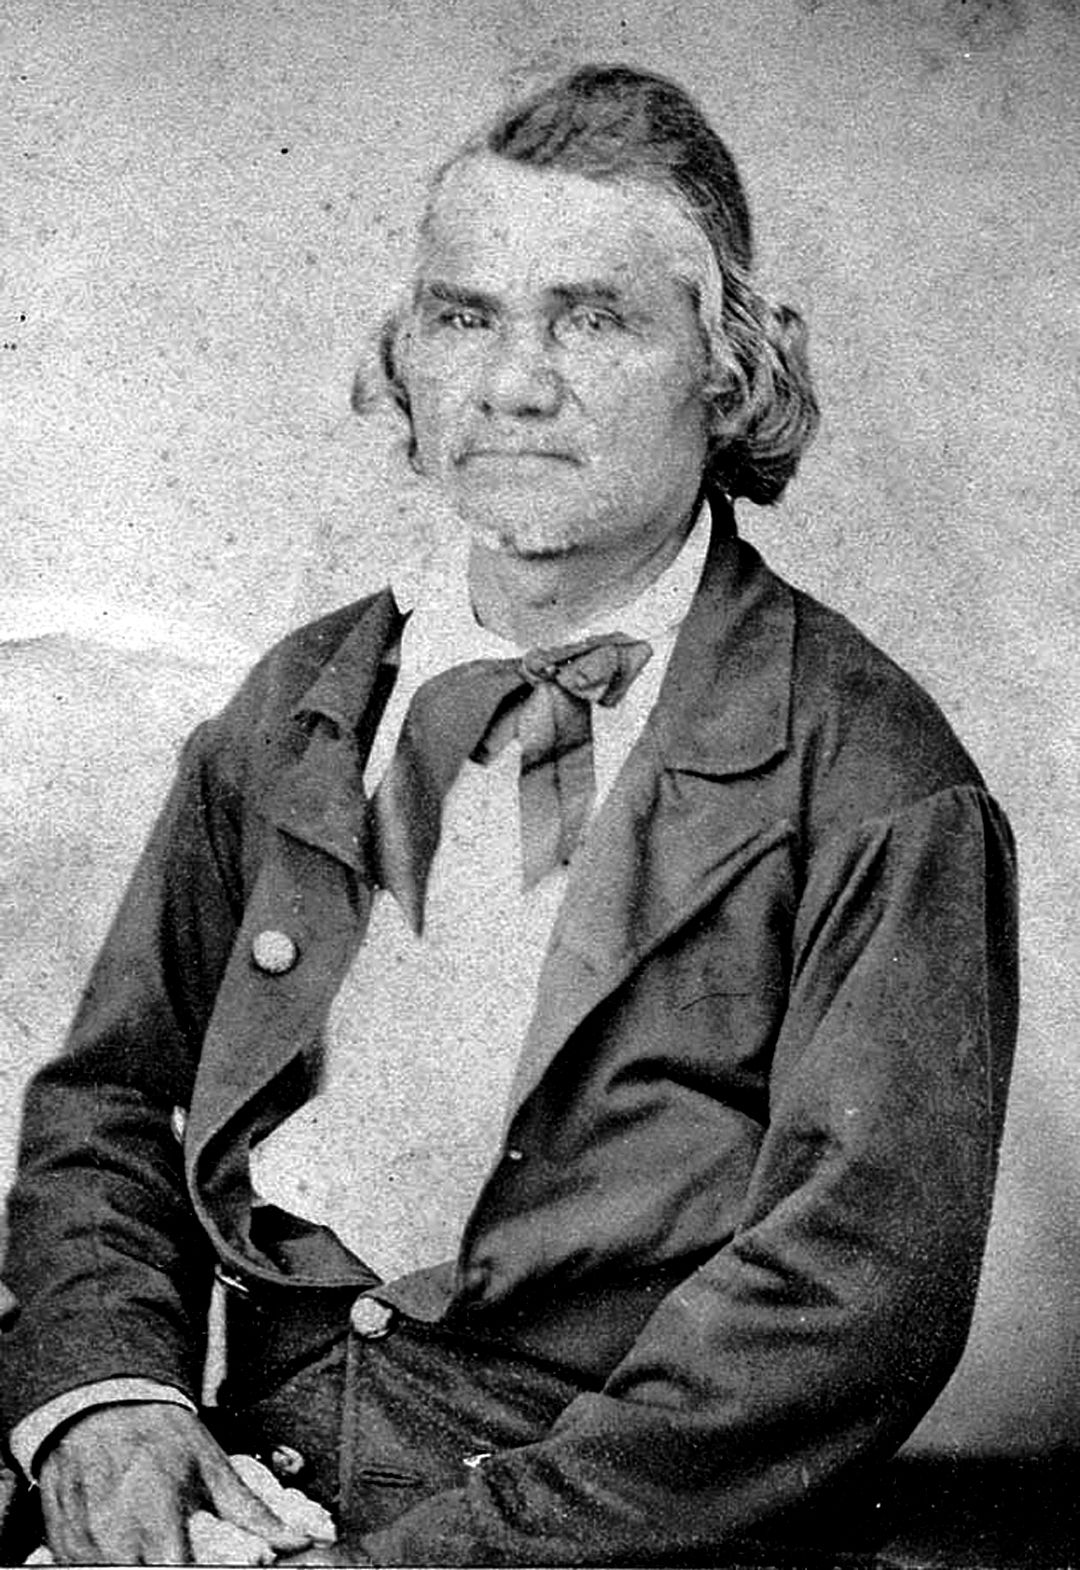 Not comfortable as politician, Watie was better suited for